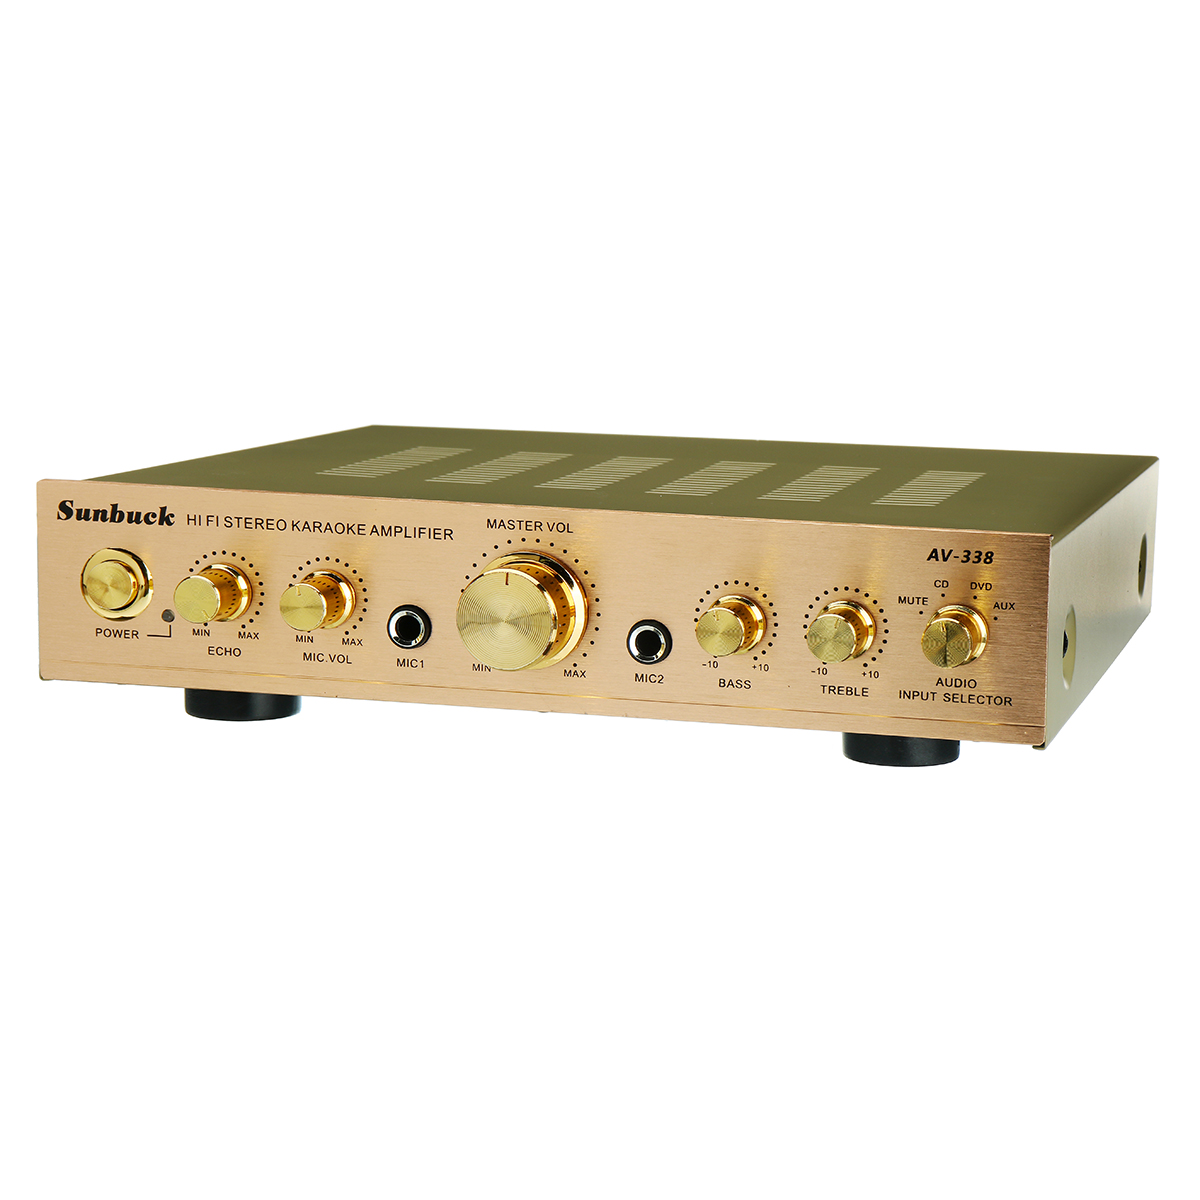 Stereo Power Amplifier 2000W 110V 220V 5 Channel Equalizer Car Amplifier Home Theater Amplifiers Audio